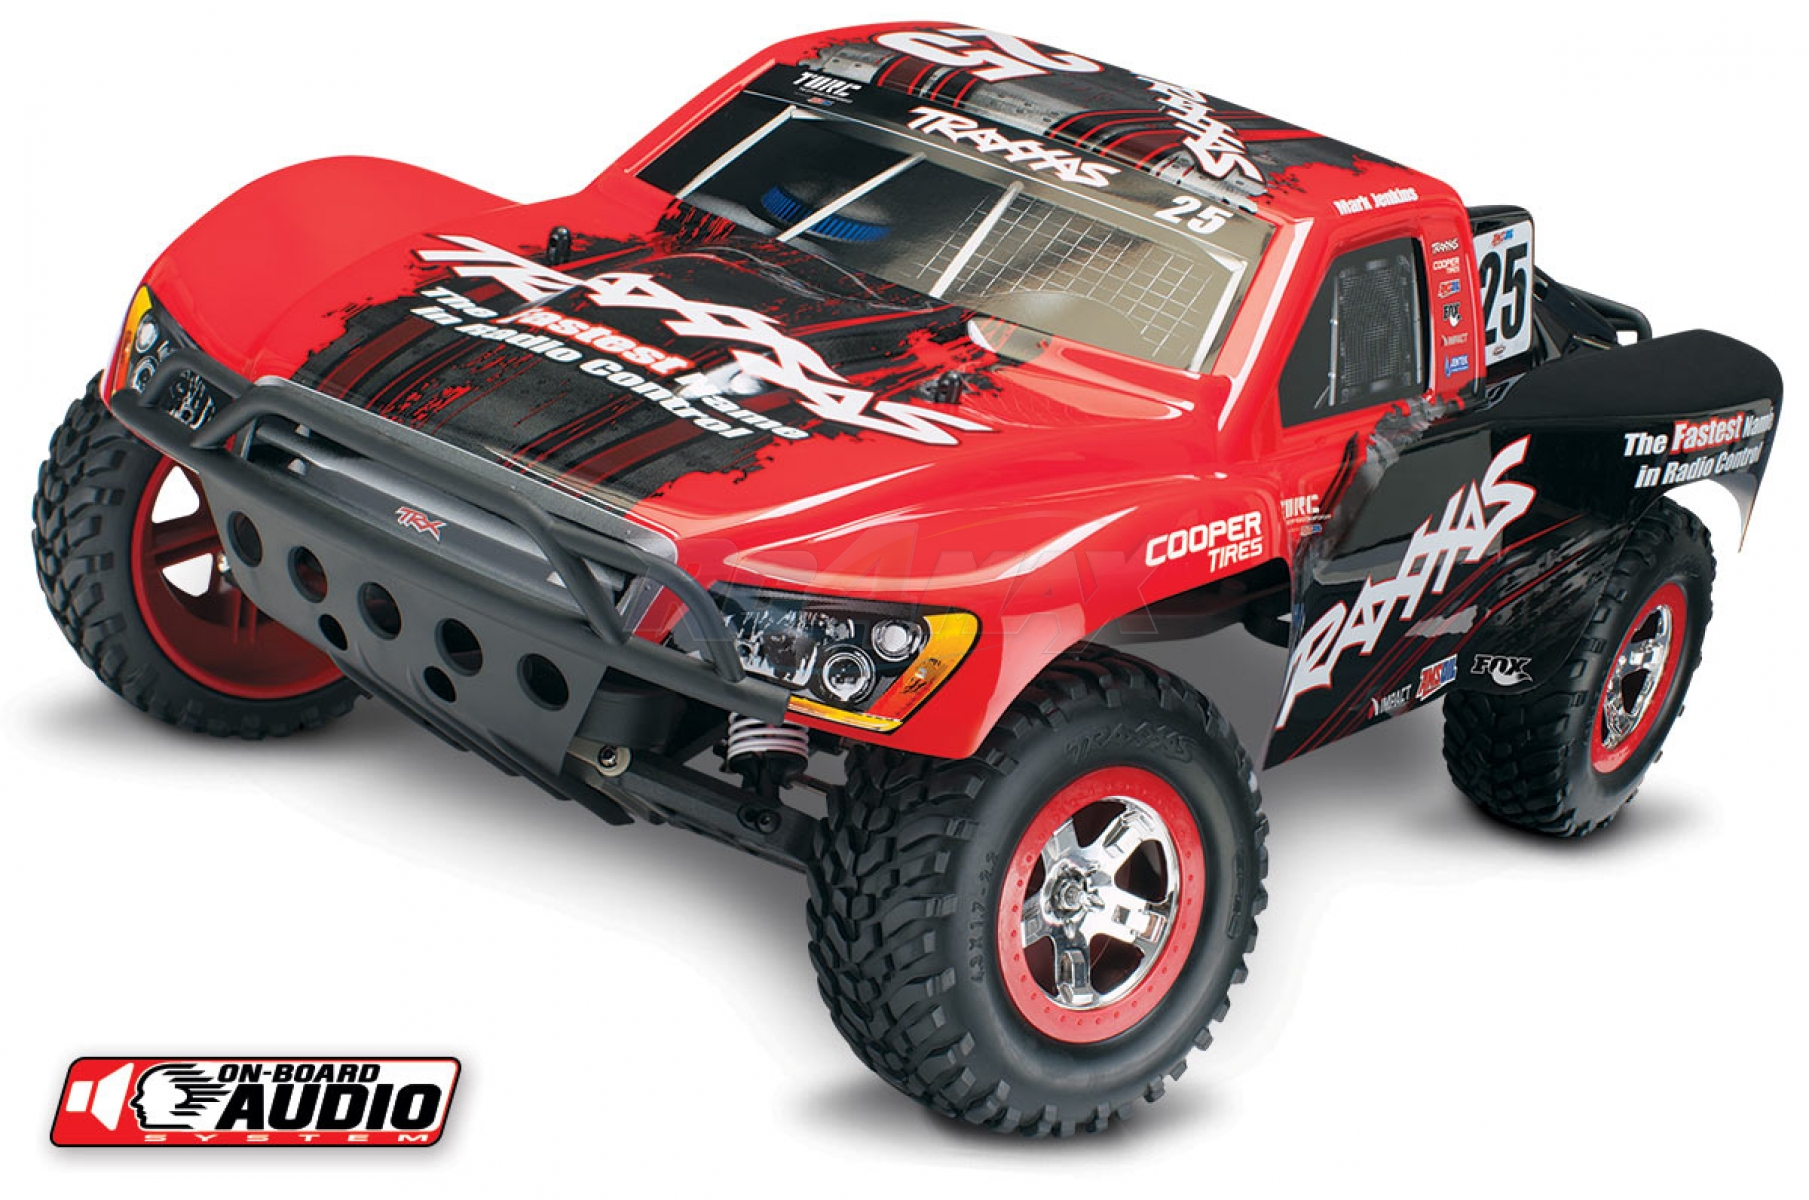 Traxxas Slash Pro 2WD z AUDIO